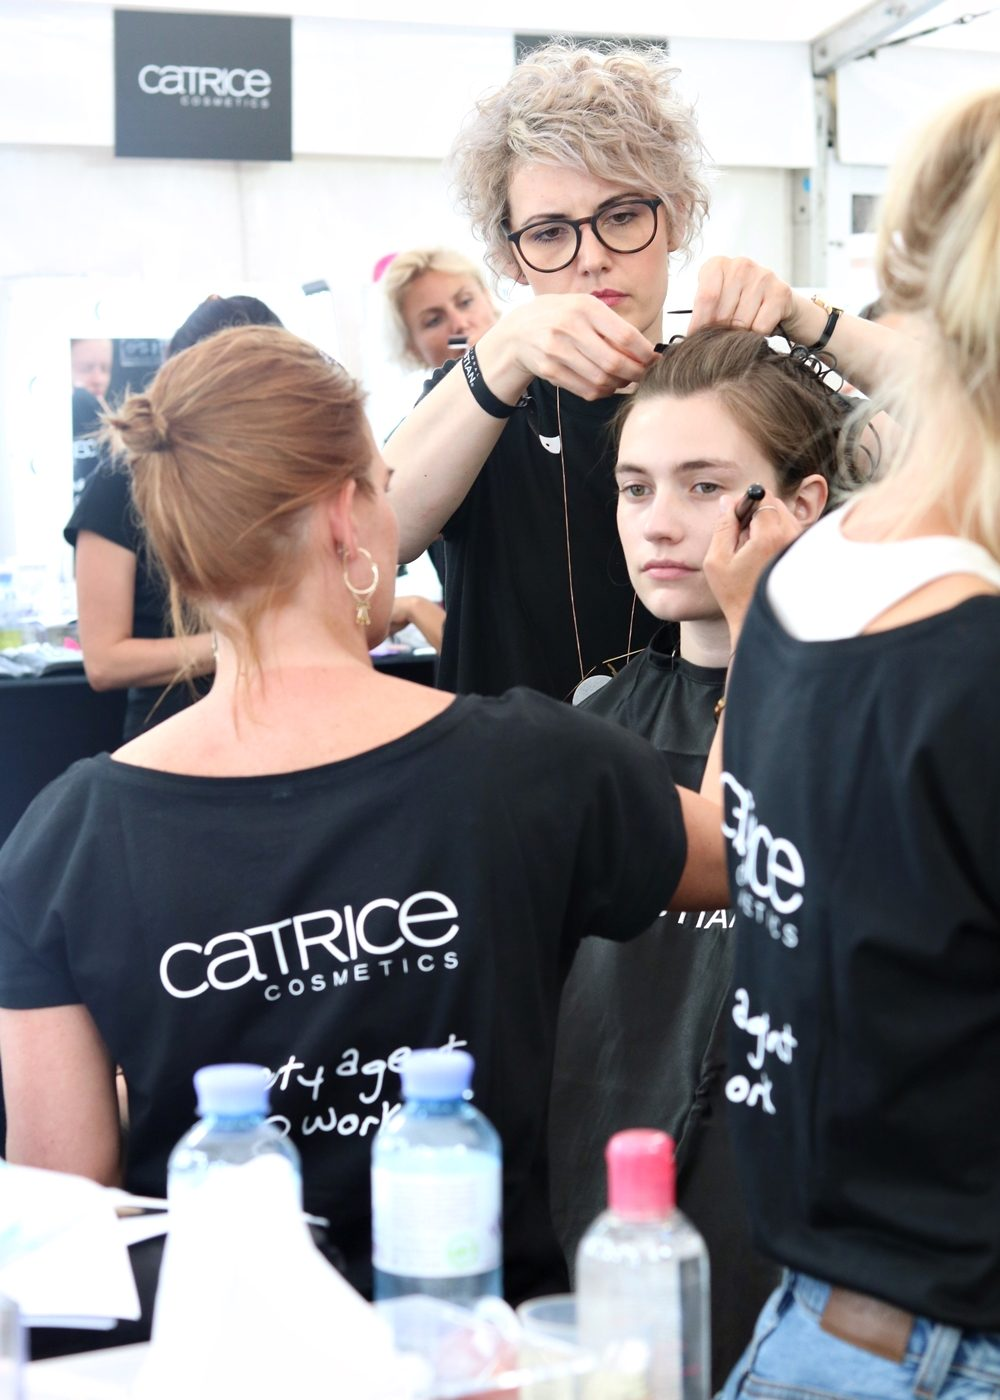 Mercedes Benz Fashion Week Berlin Juli 2016 Berliner Mode Vladimir Karaleev backstage (3)